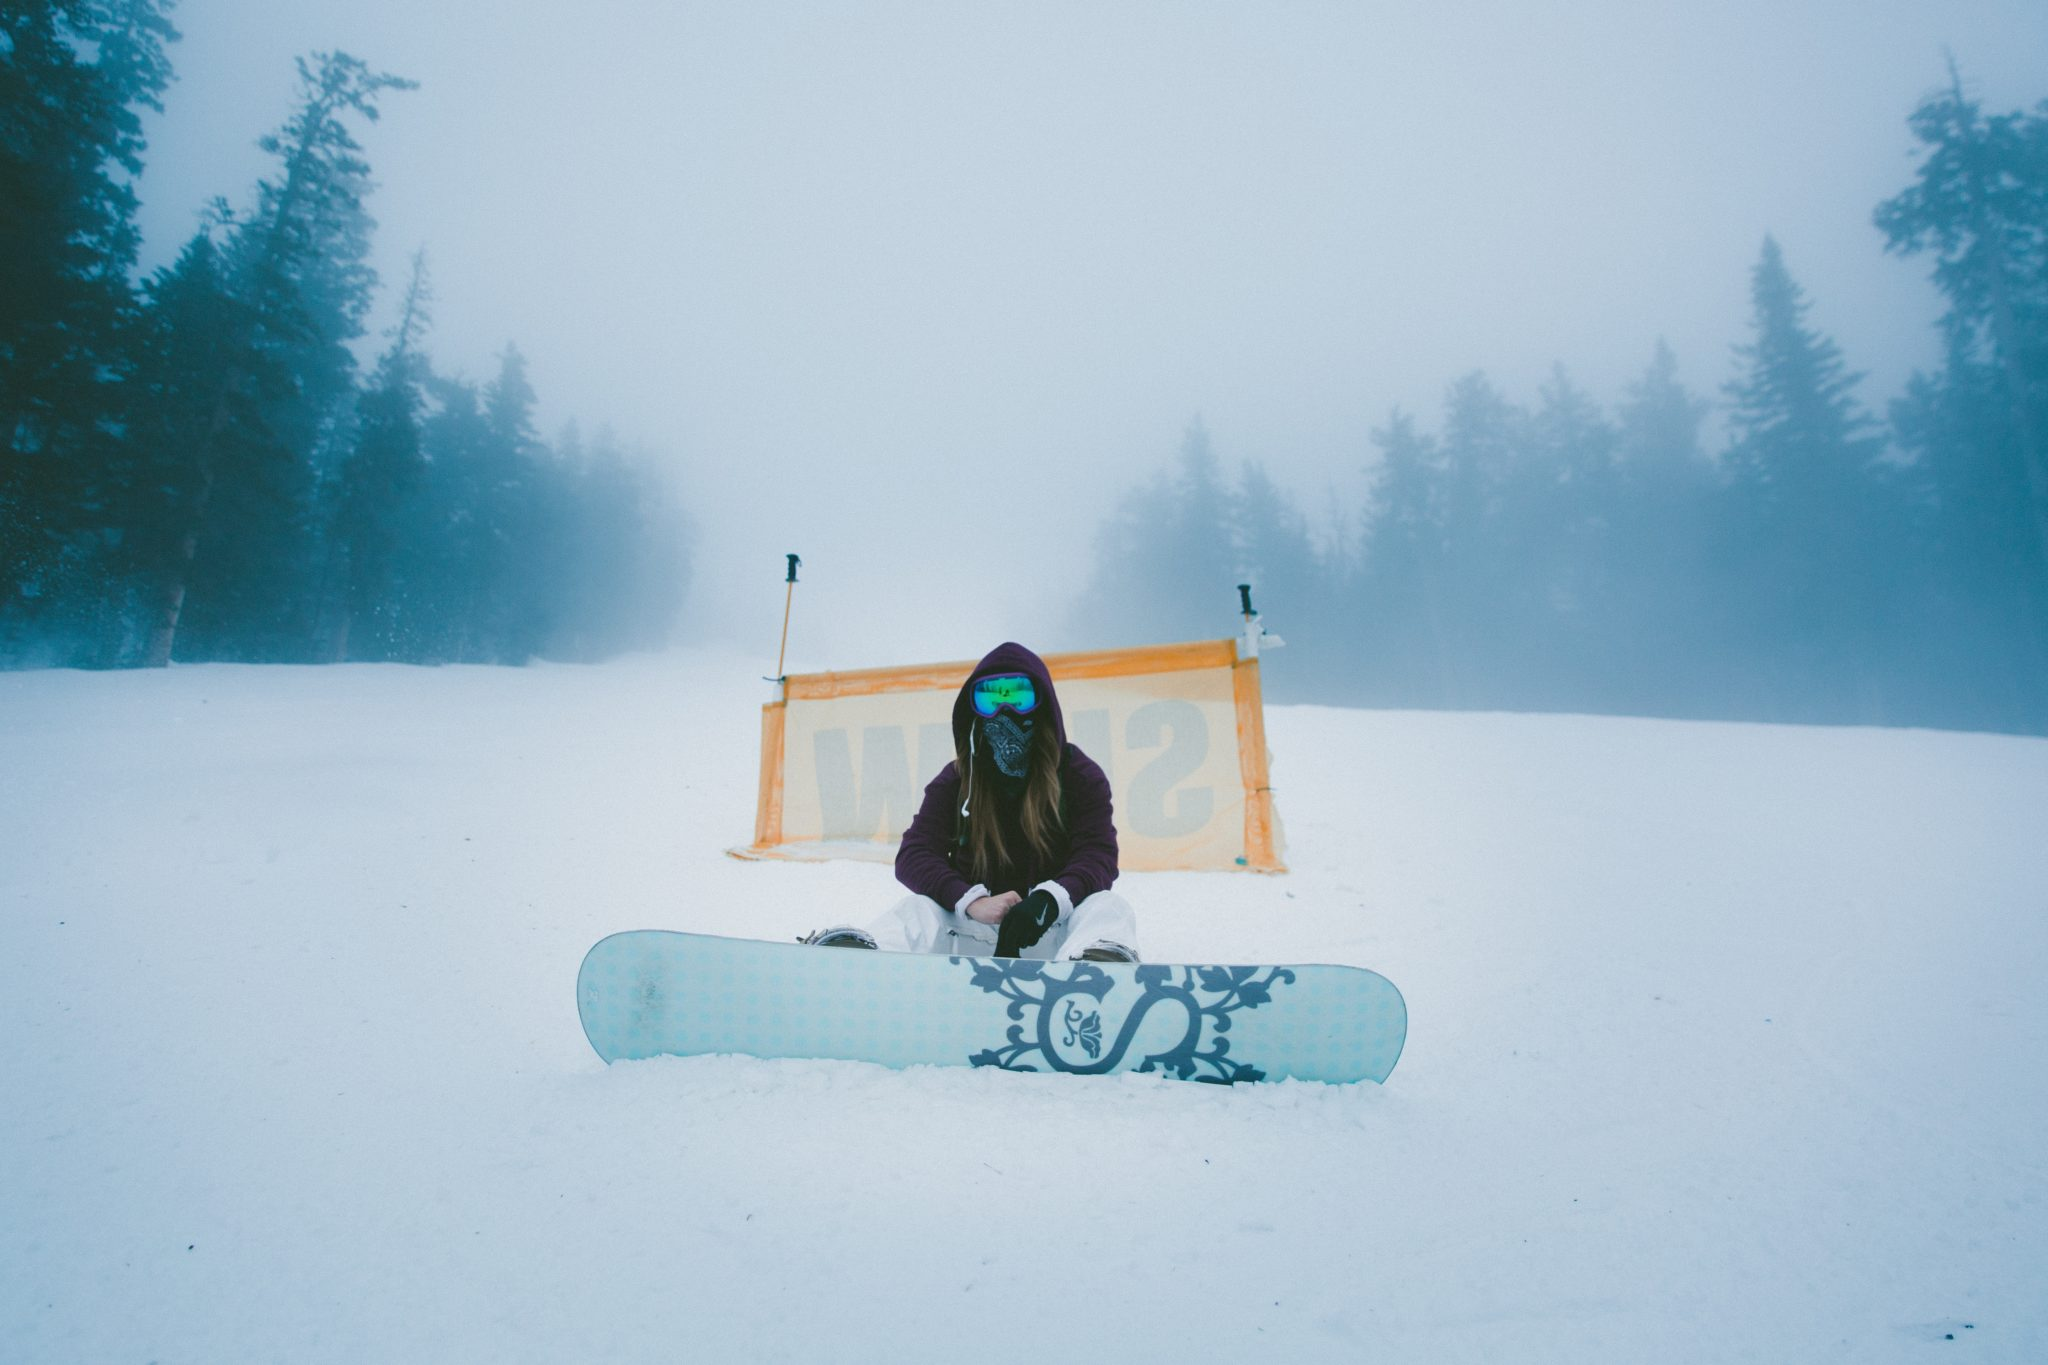 extreme winter sports girl